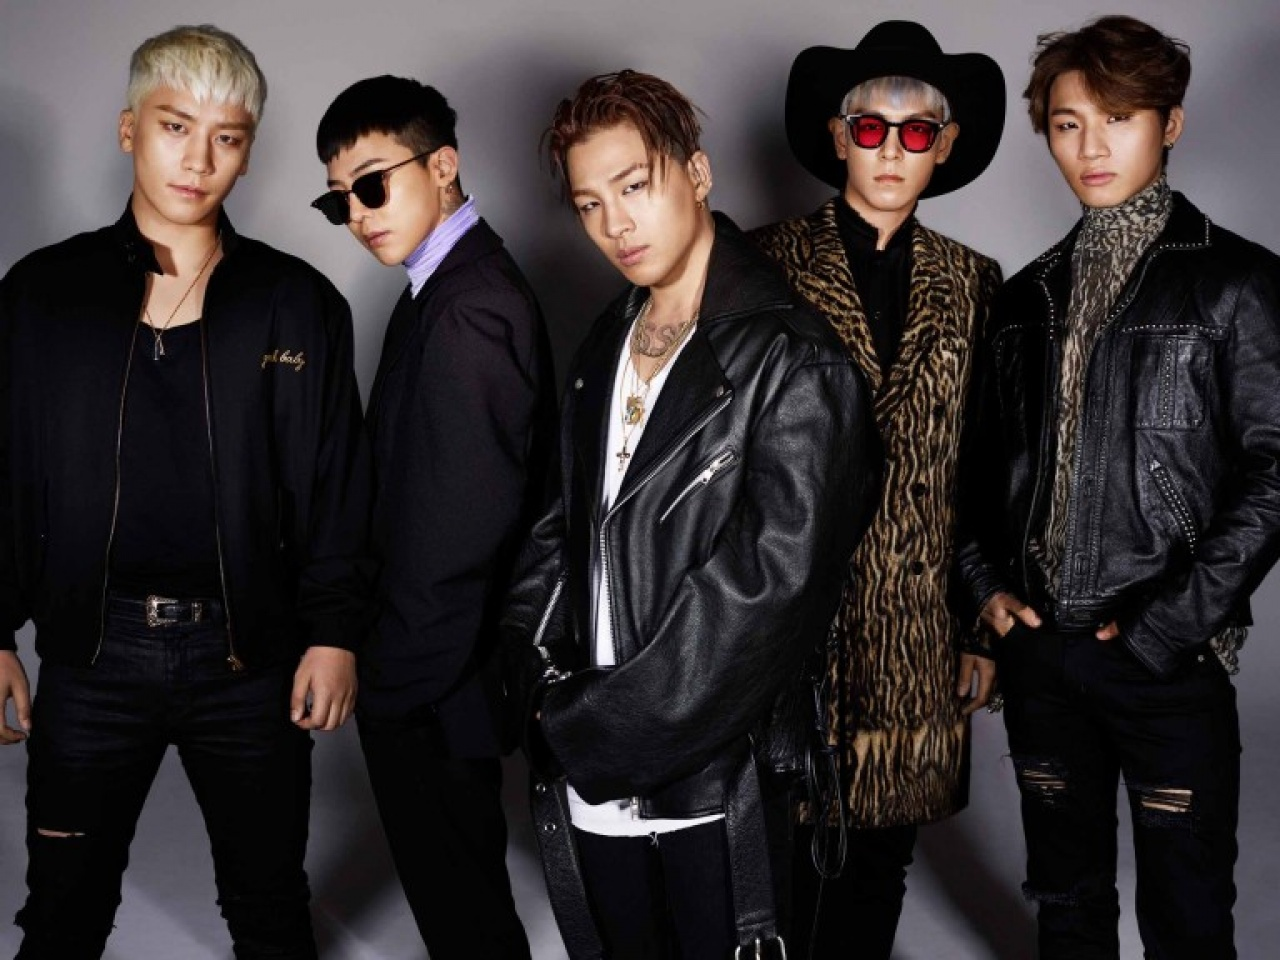 10th anniversary of his debut, BIGBANG will hold a surprise concert. (Online picture)